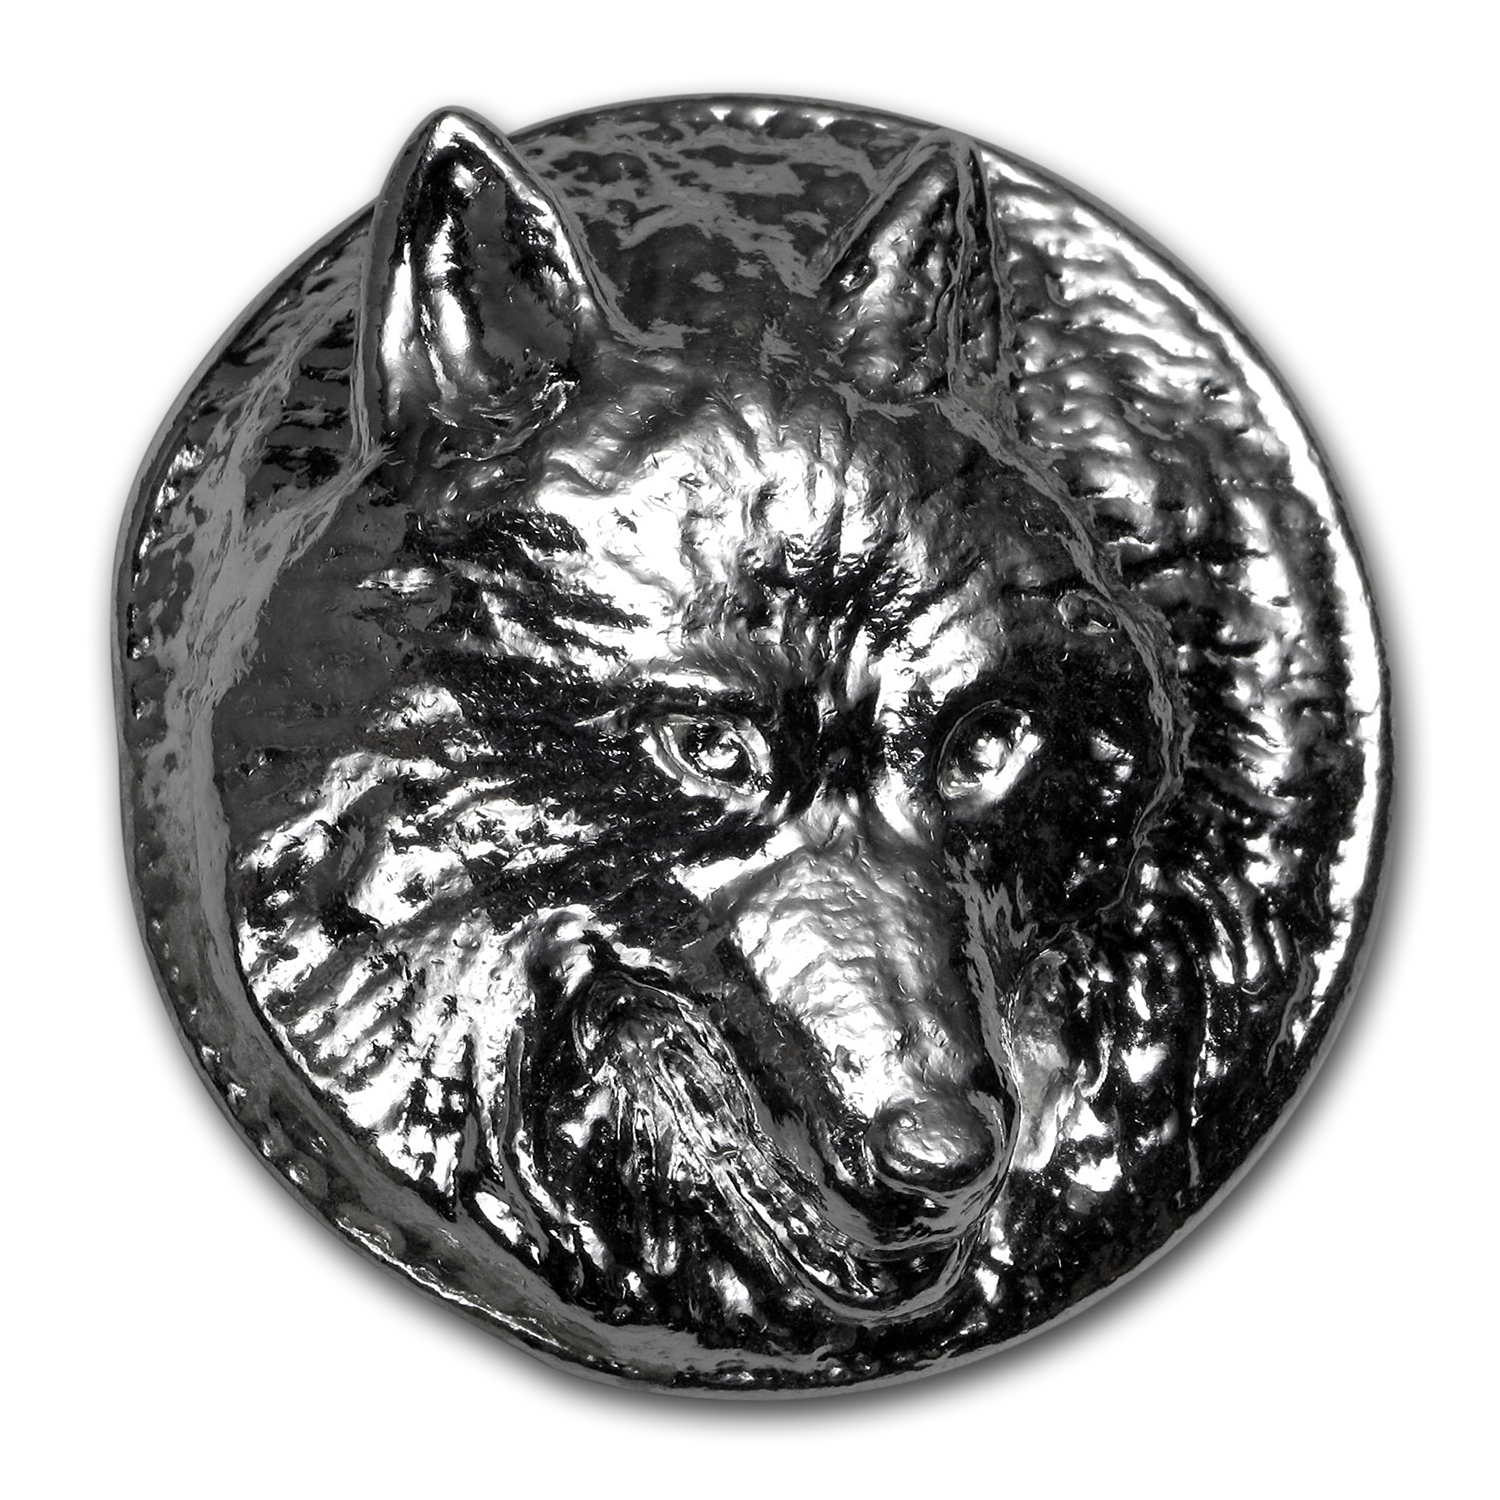 5 oz Silver Round - Yeager Poured Silver (Wolf, UHR)